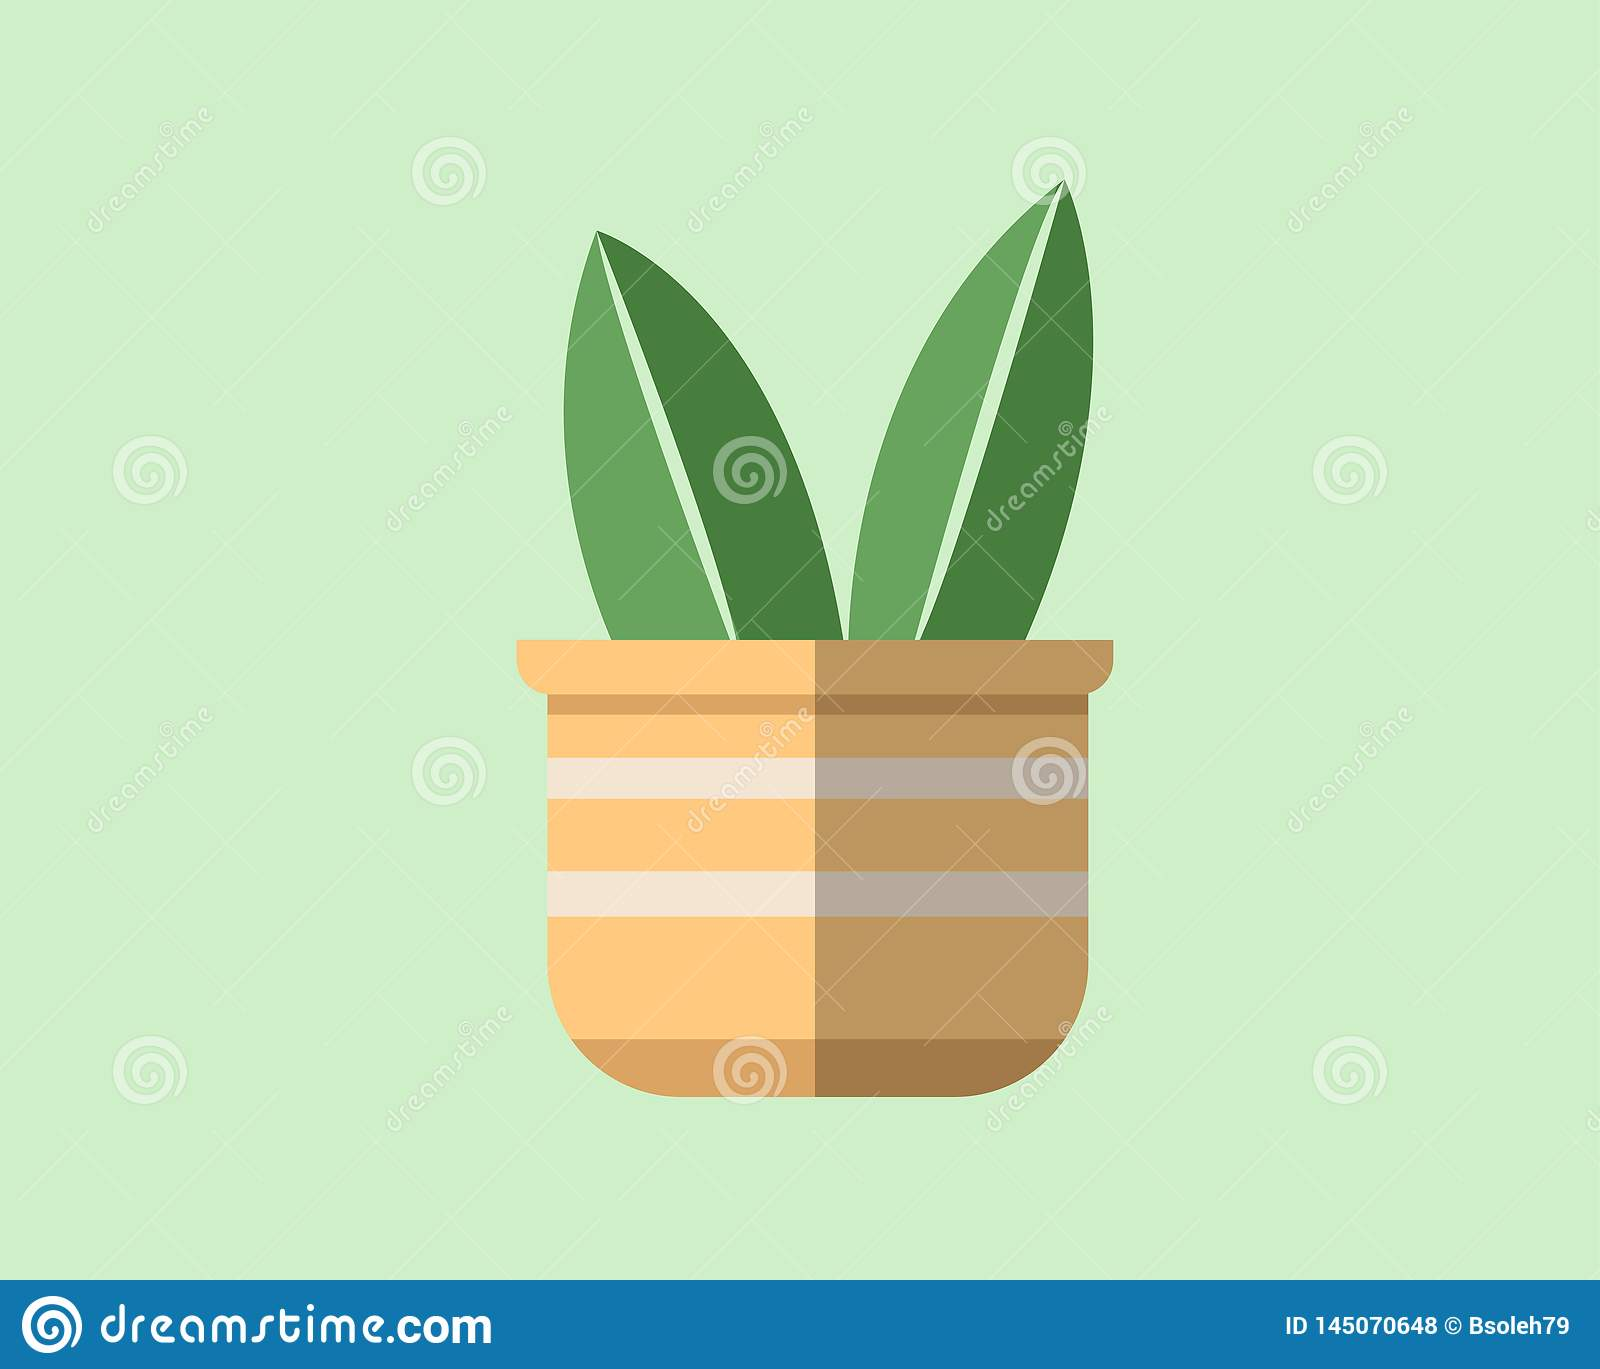 Flat design of a plant in a pot